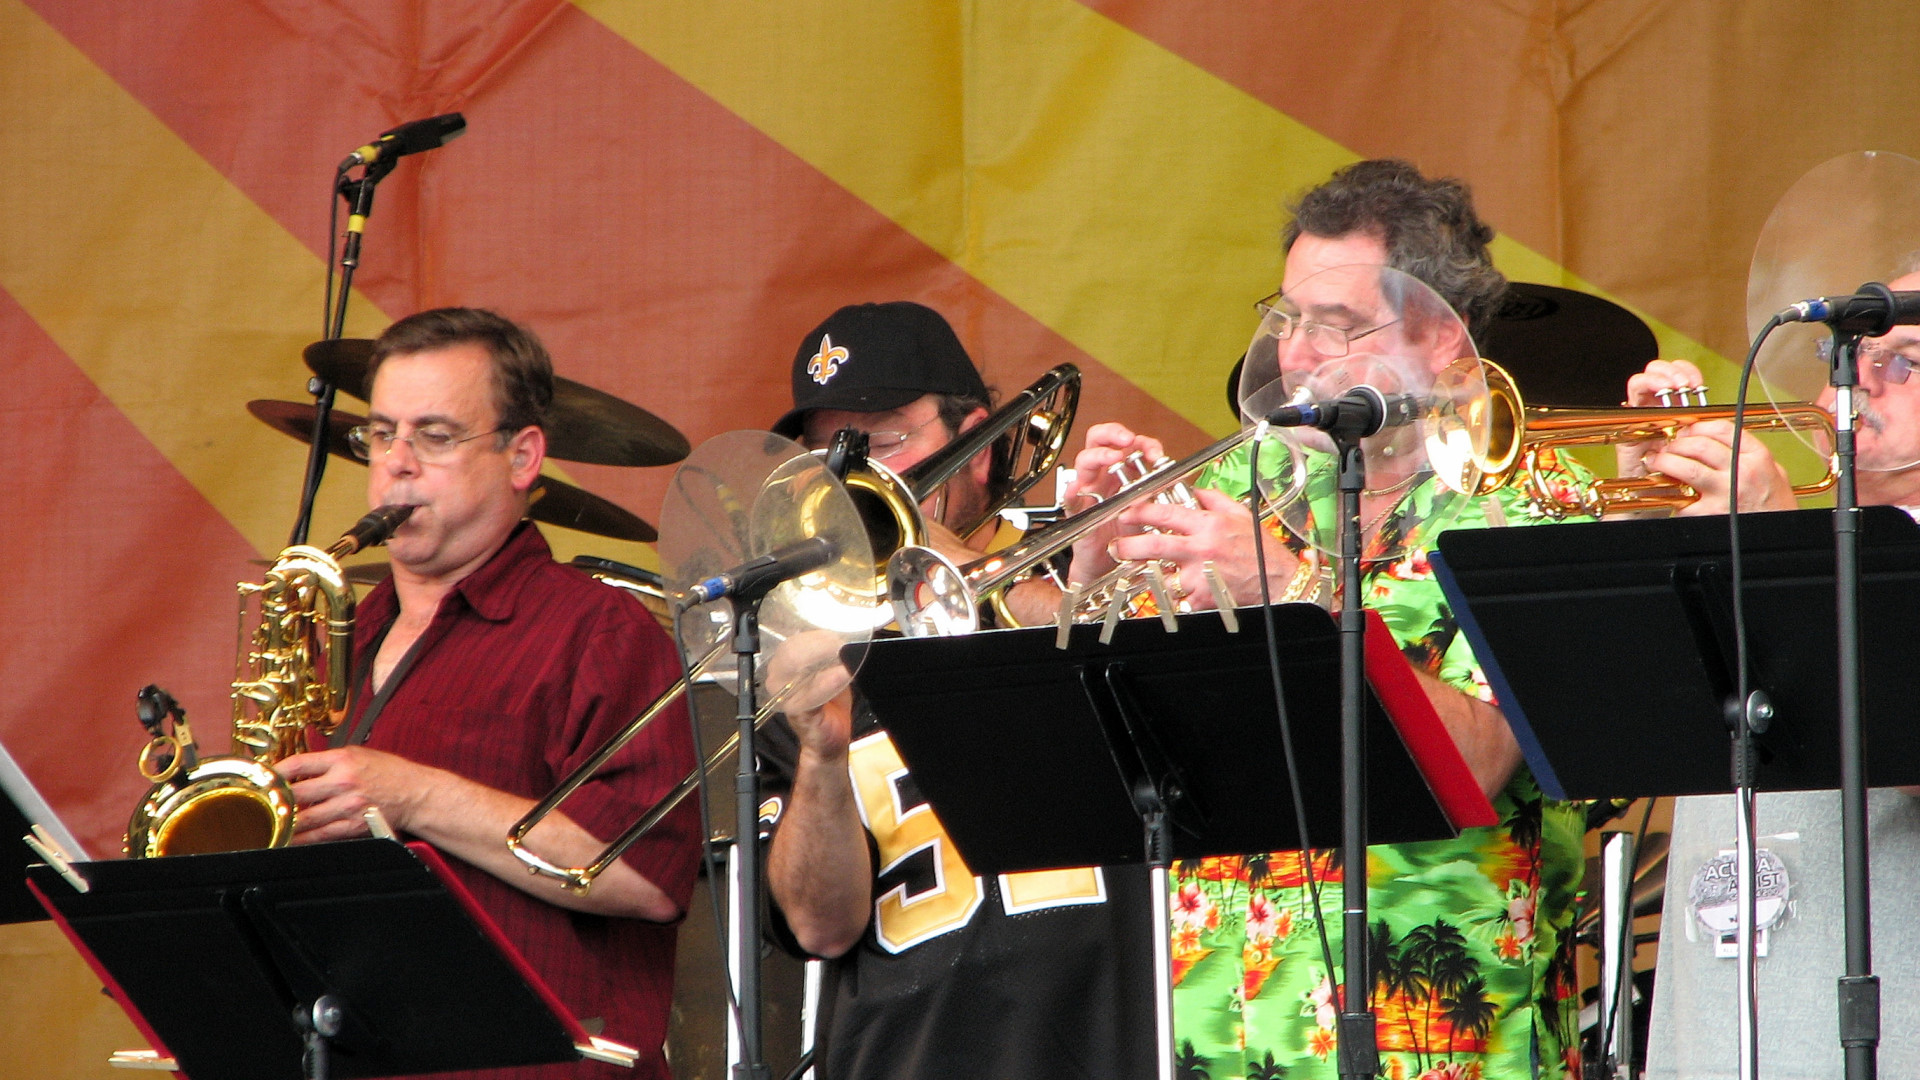 Ward Smith on sax, Mike Genevay on trombone, and trumpeters Jimmy Weber and A. J. Pittman